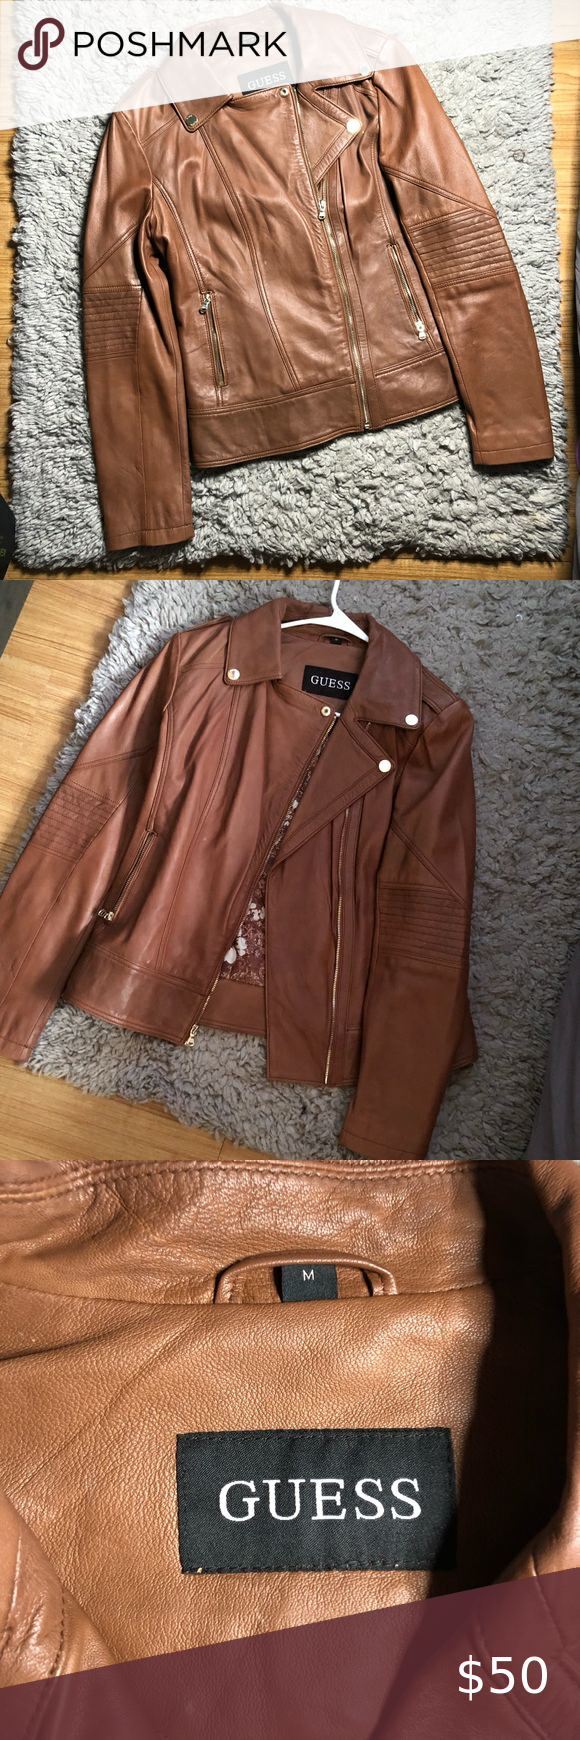 Guess Jacket Tan Brown Leather Size M Jackets Leather Clothes Design [ 1740 x 580 Pixel ]